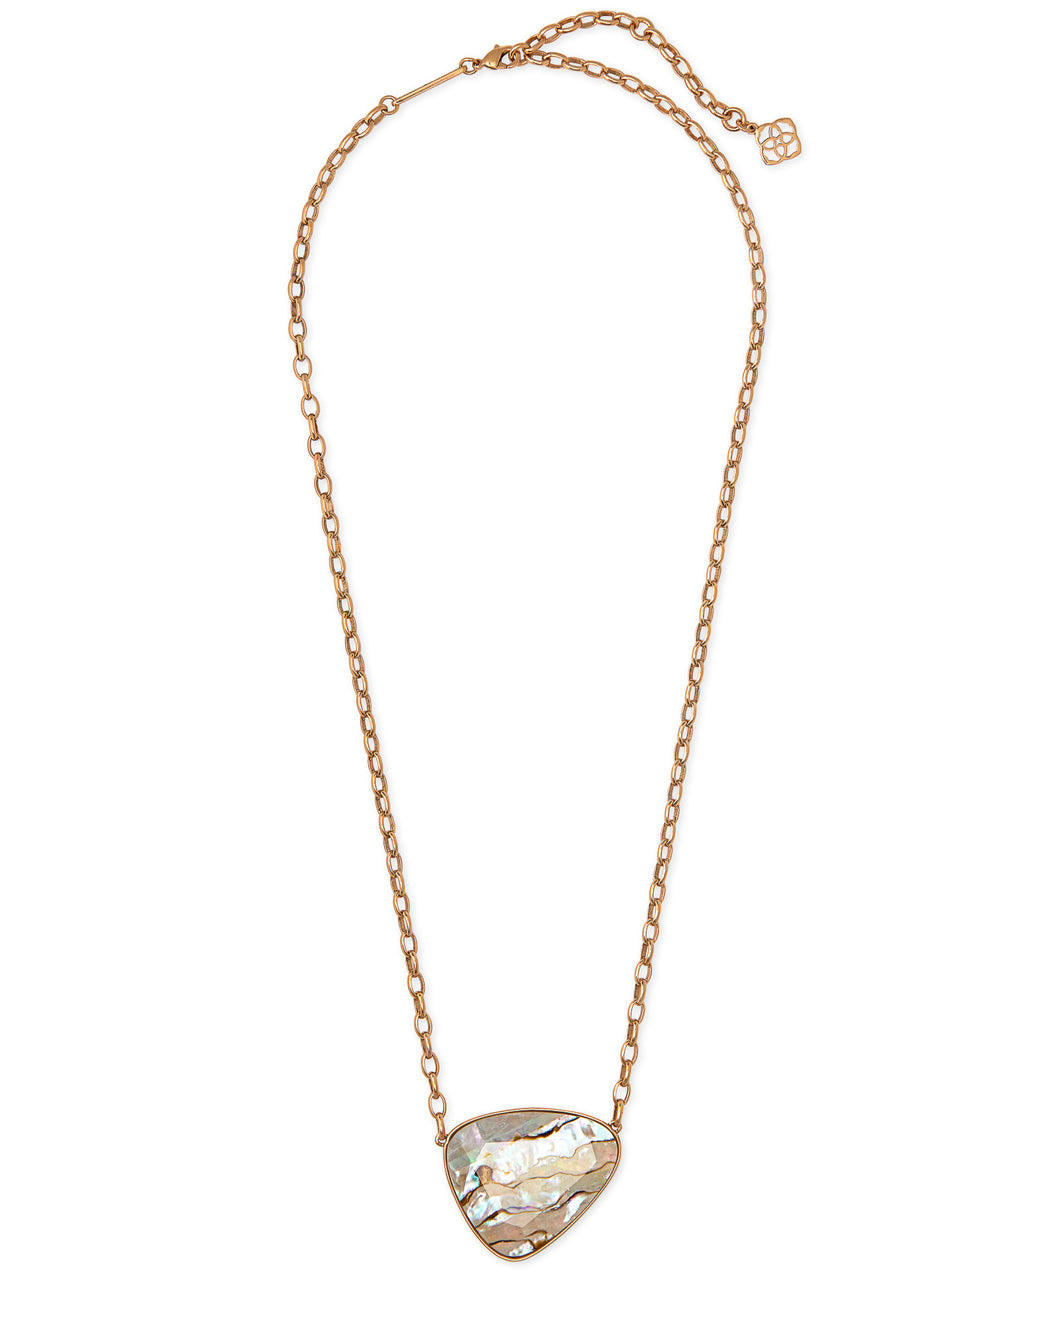 Mckenna Vintage Gold Pendant Necklace-White Abalone